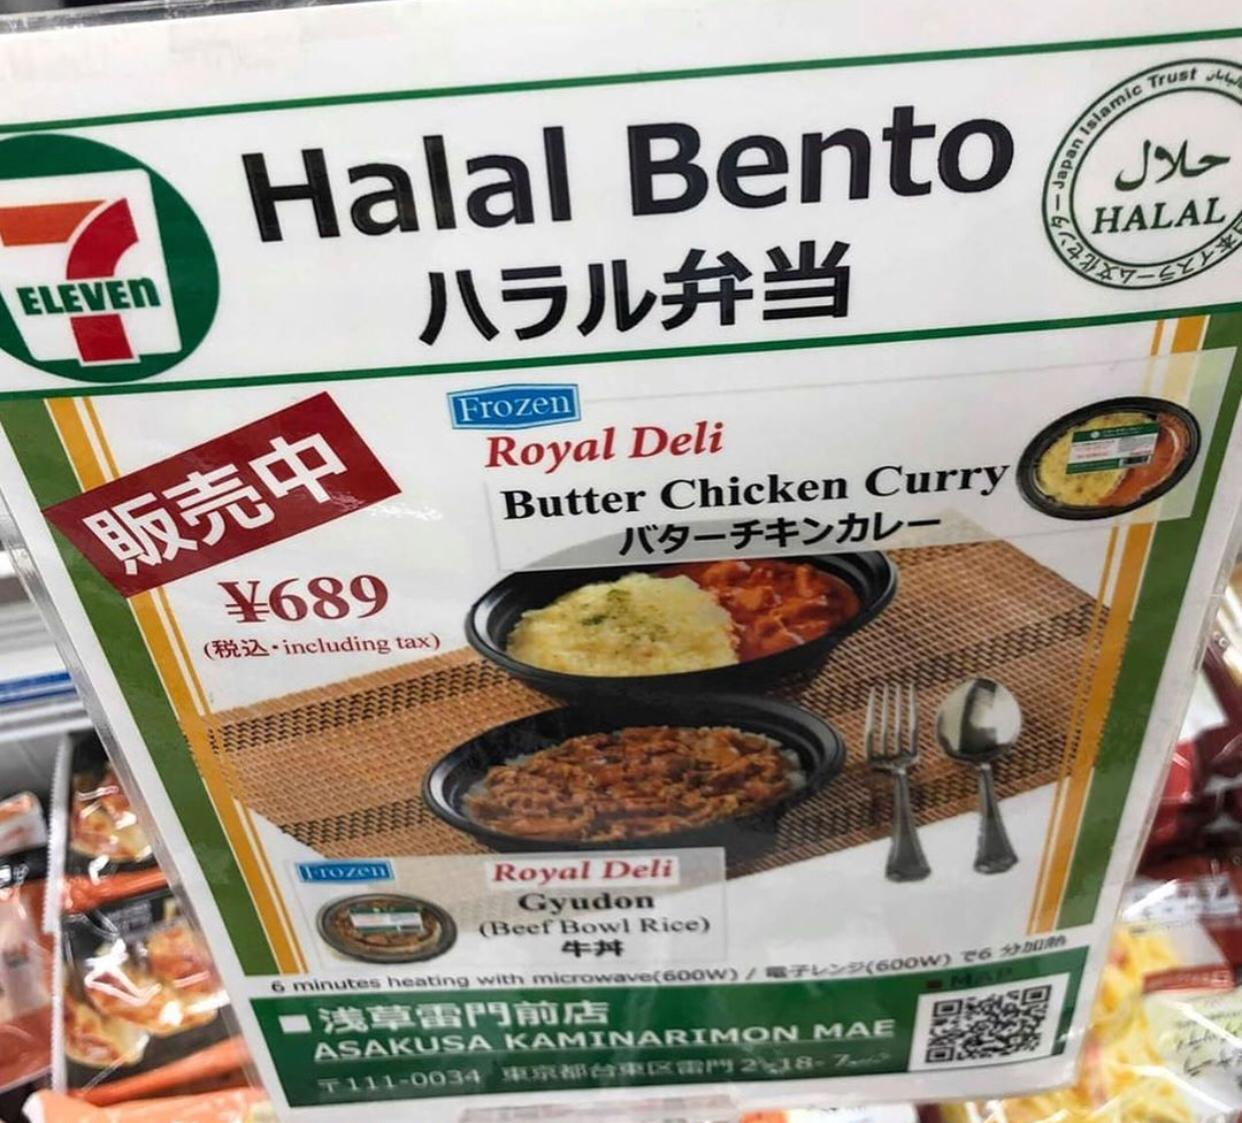 Seven Eleven S Halal Bento Review Food Diversity Today